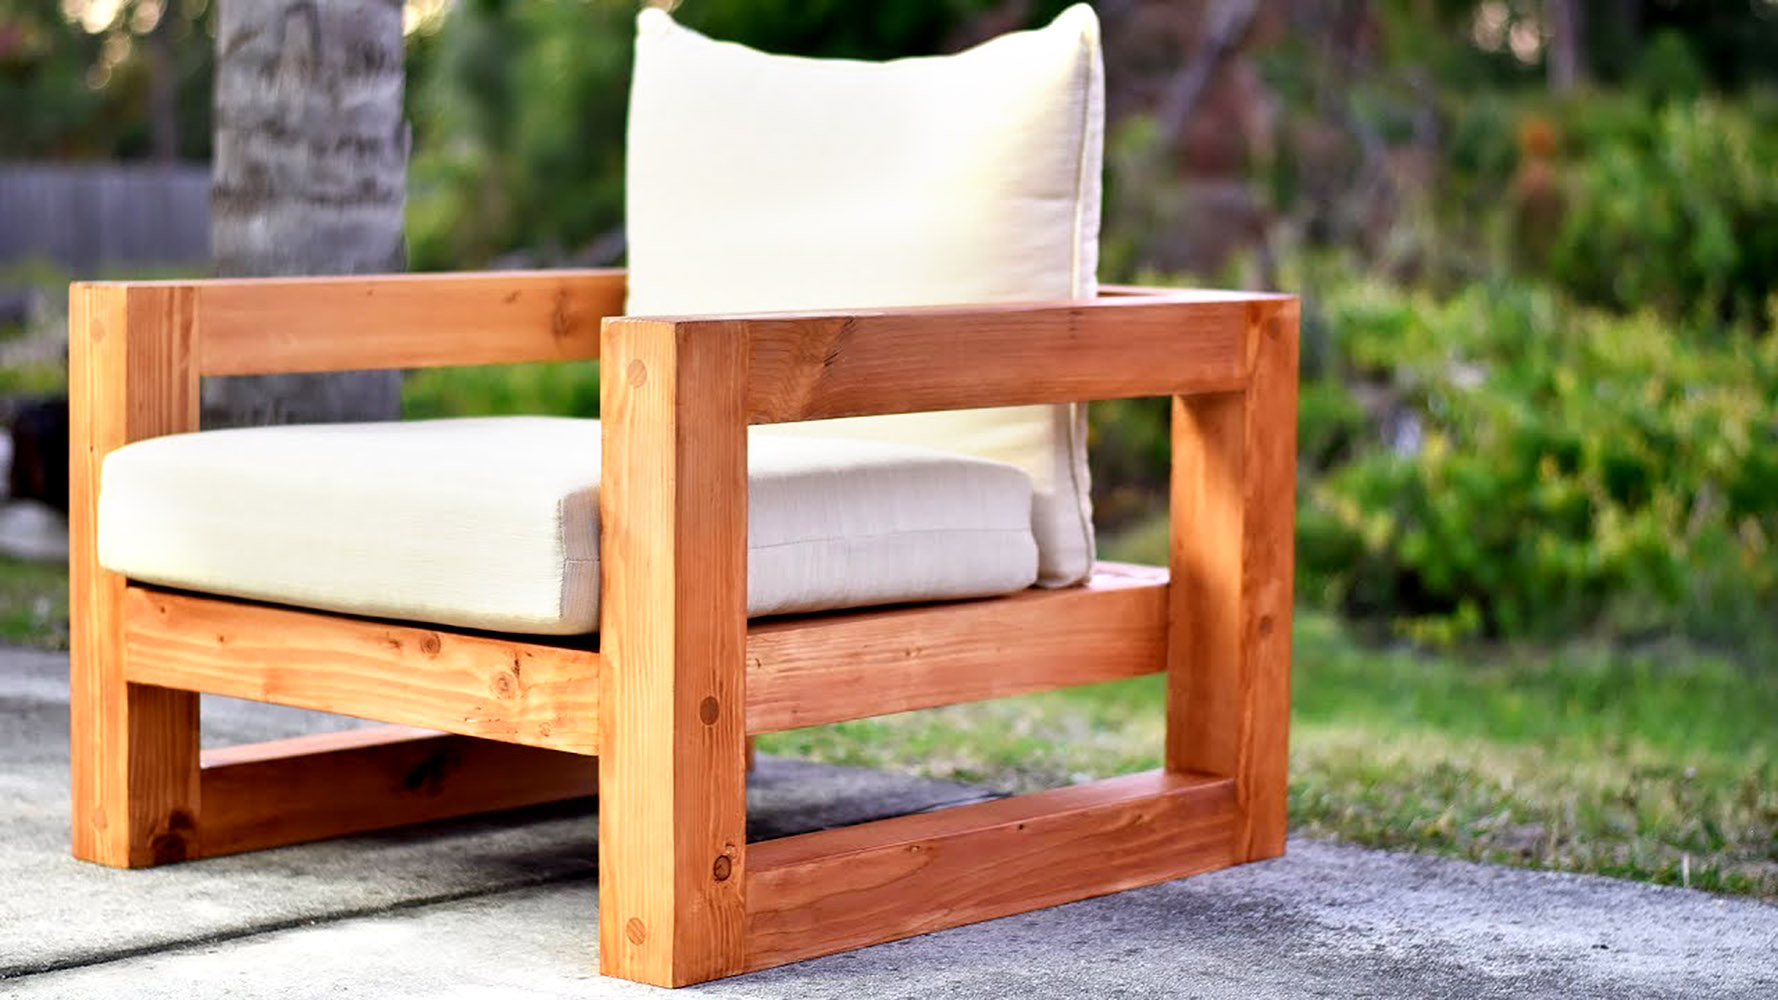 How to Turn Inexpensive Wood into Modern Outdoor Furniture